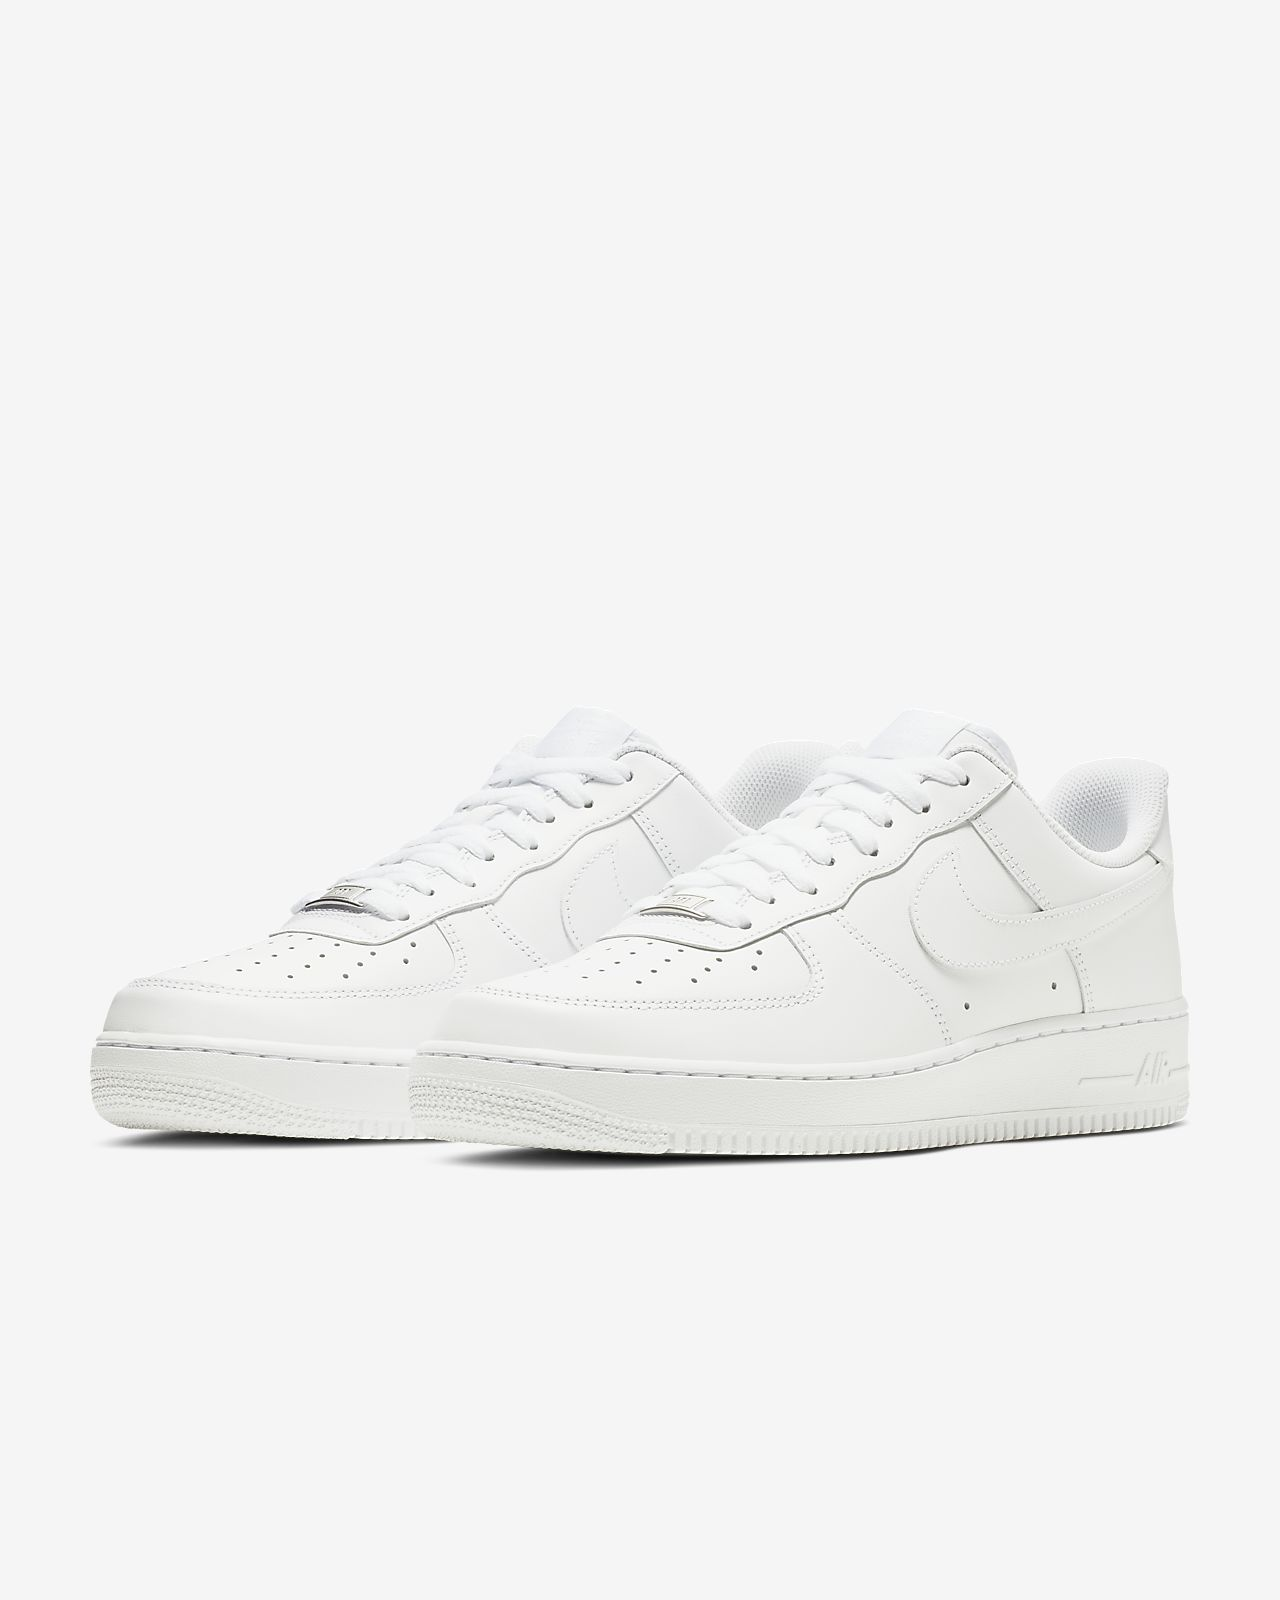 Nike Air Force 1 Mens Tous Blancs